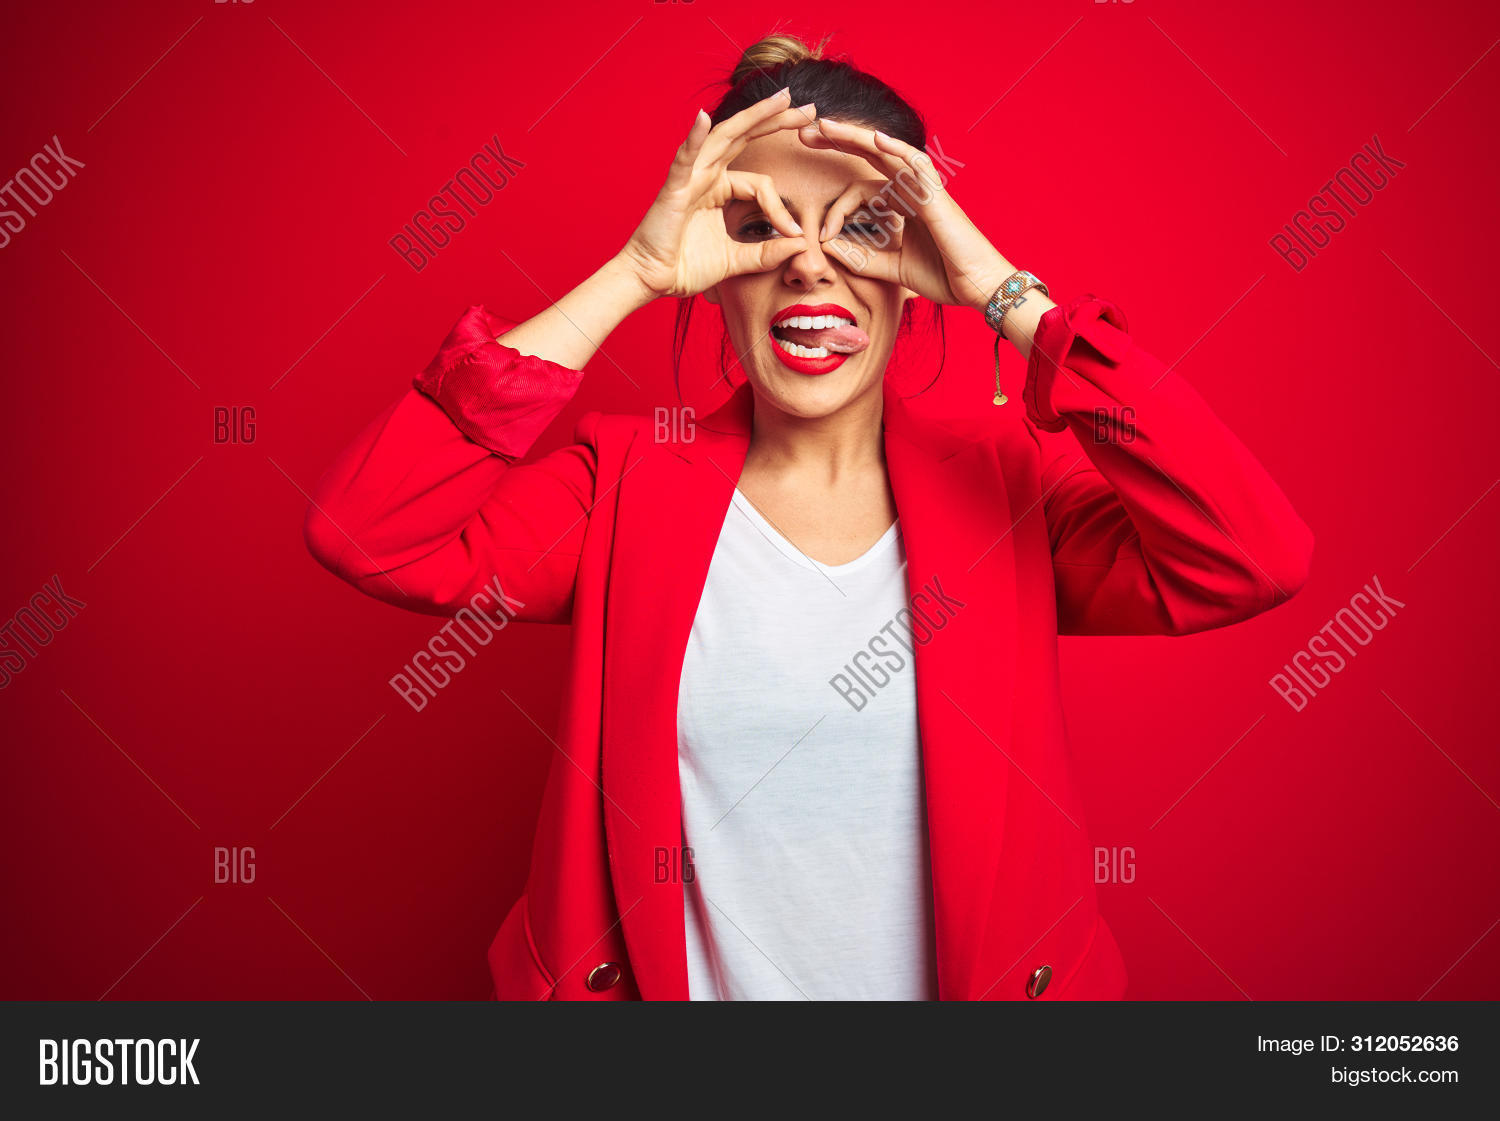 adult,approve,attractive,background,beautiful,binoculars,boss,brunette,business,cheerful,confident,crazy,doing,expression,eyes,face,female,finger,fingers,fun,funny,gesture,girl,hand,happiness,happy,hispanic,humor,isolated,jacket,look,looking,manager,mouth,ok,out,person,portrait,positive,red,sign,standing,sticking,studio,through,tongue,vision,woman,worker,young